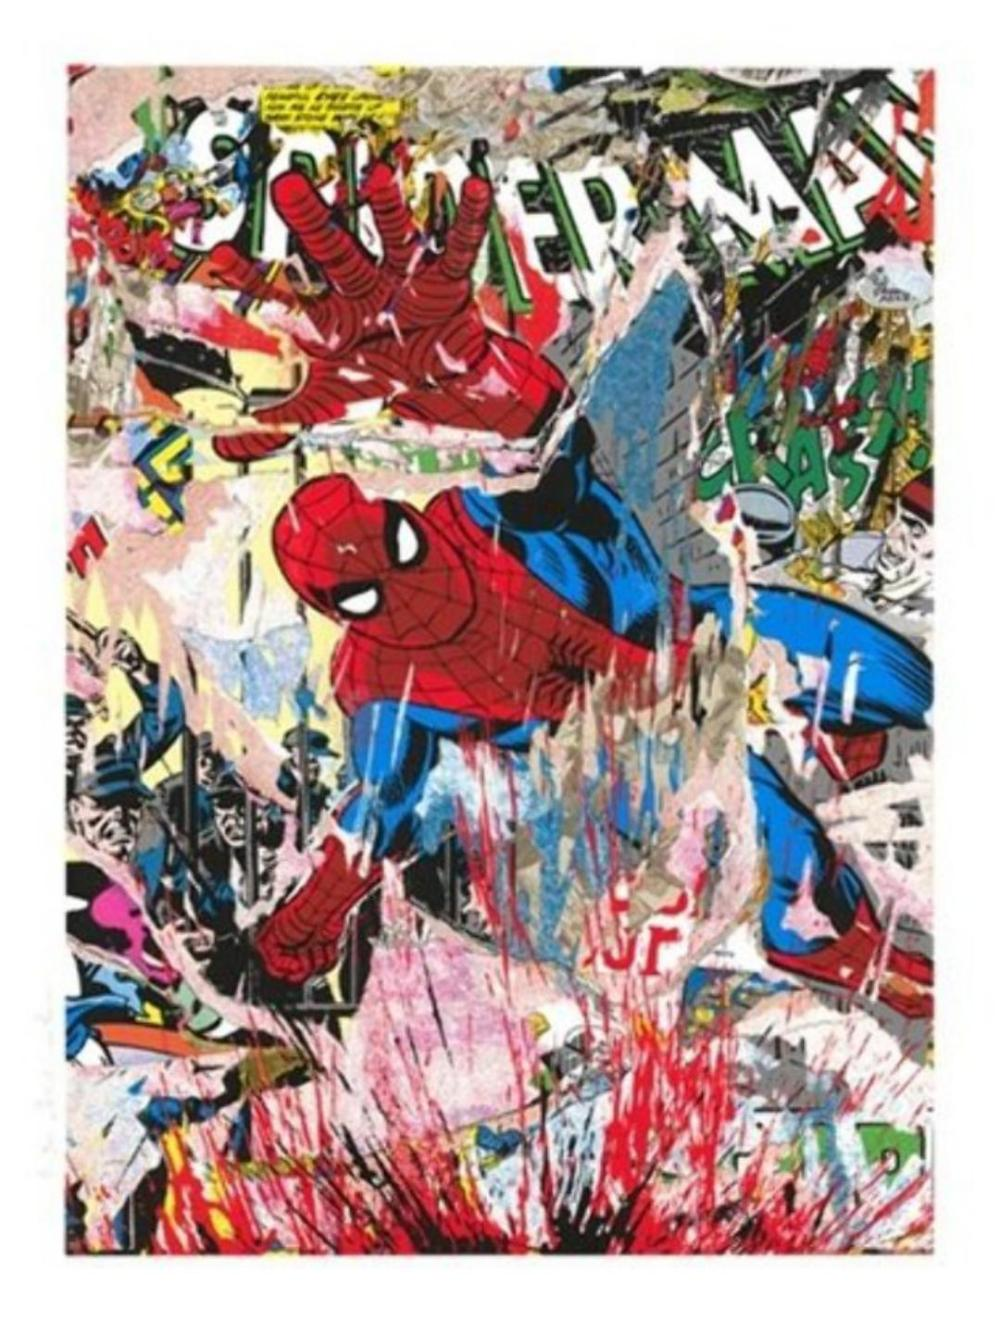 Mr Brainwash ~ Spiderman, Signed and Numbered